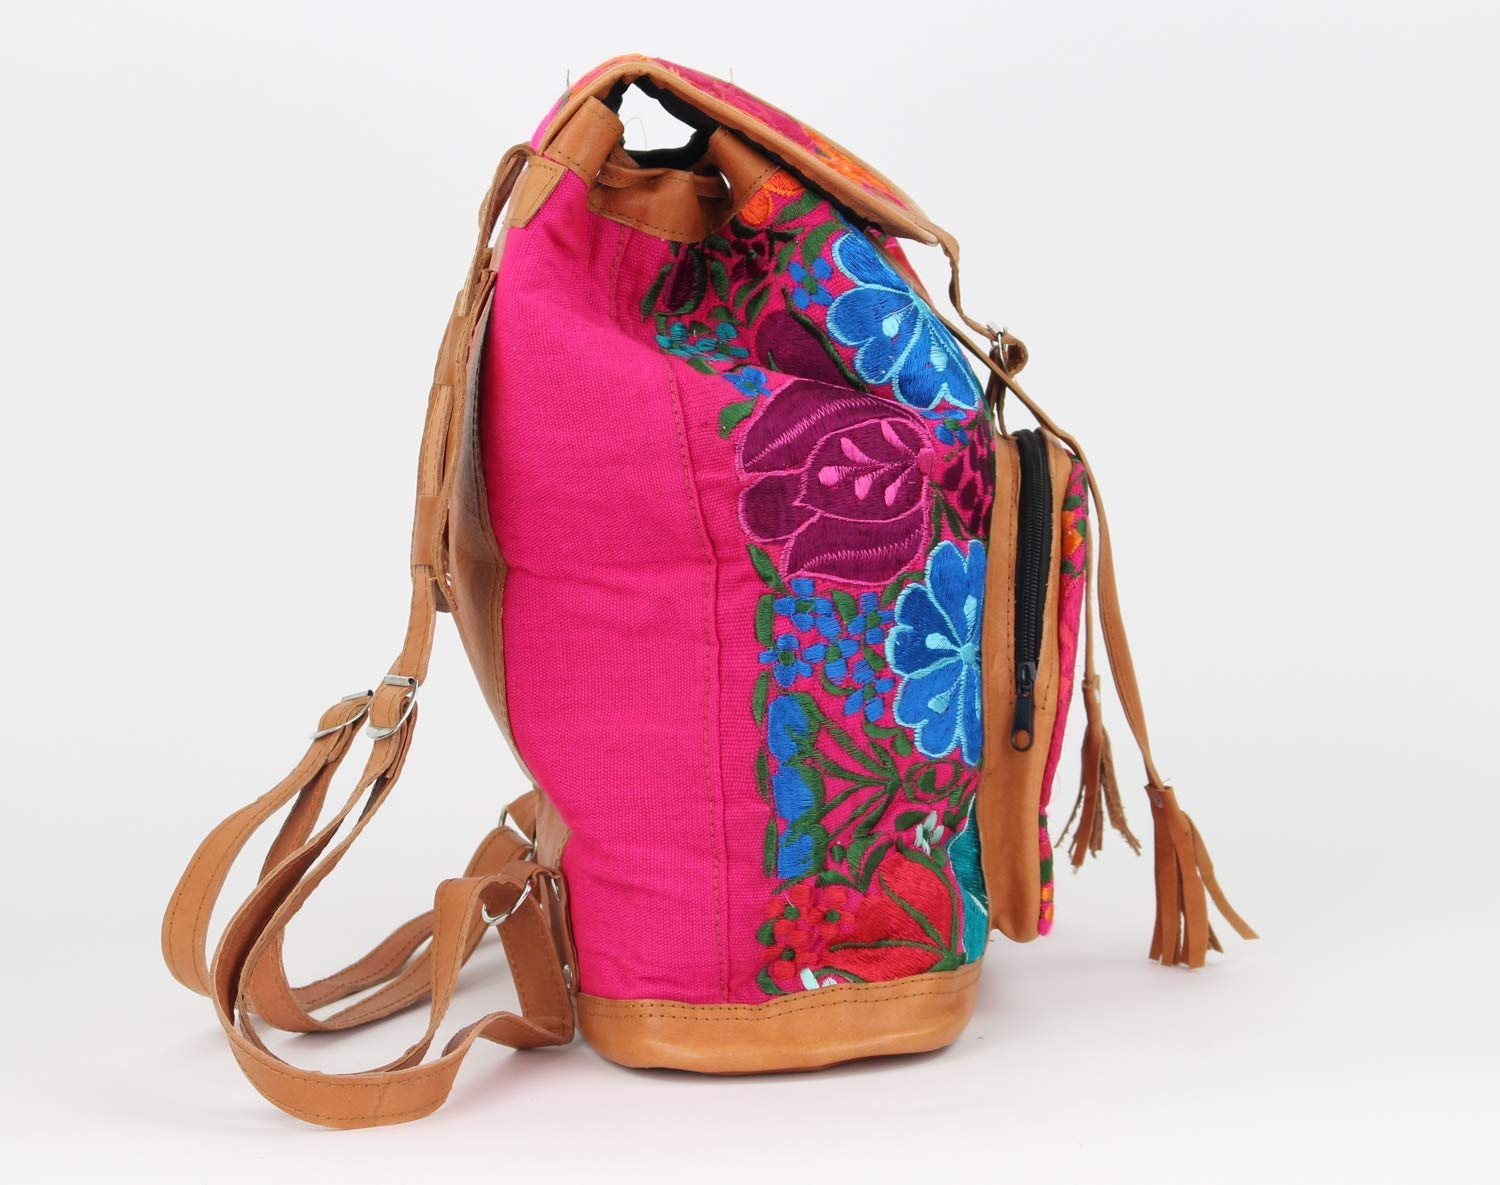 Amazon.com: Boho Backpack - Mexican Leather Embroidered Backpack - Hippie Backpack - Mochilas de mujer de moda - Pink: Handmade